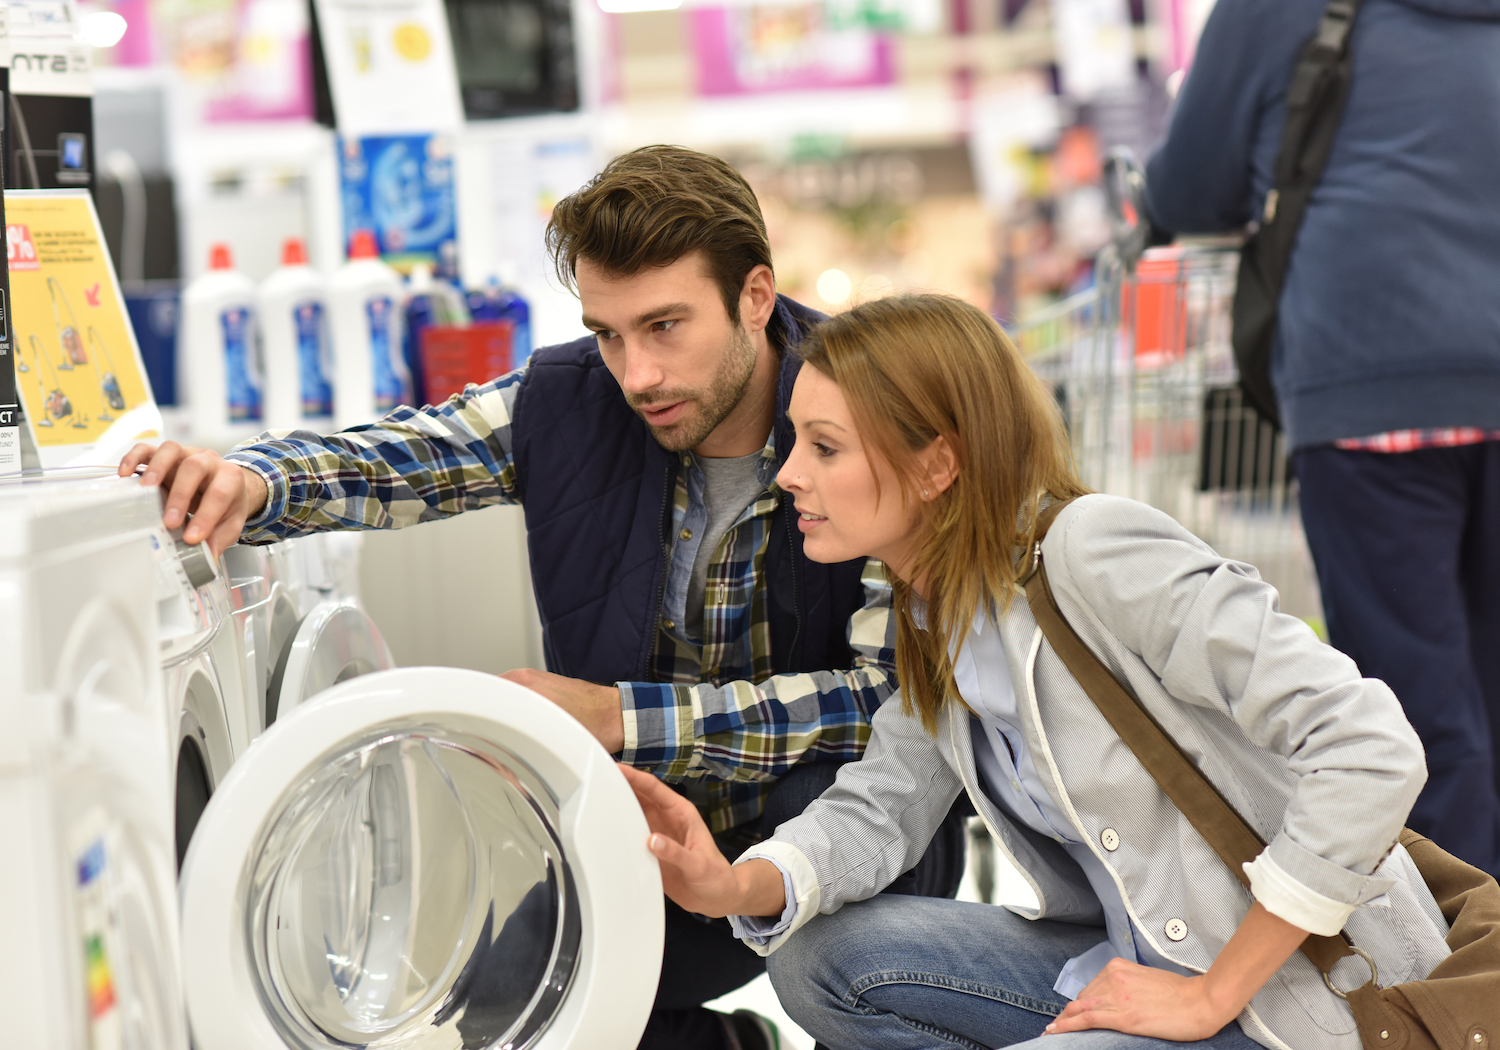 US Consumer Confidence Falls for Third Consecutive Month